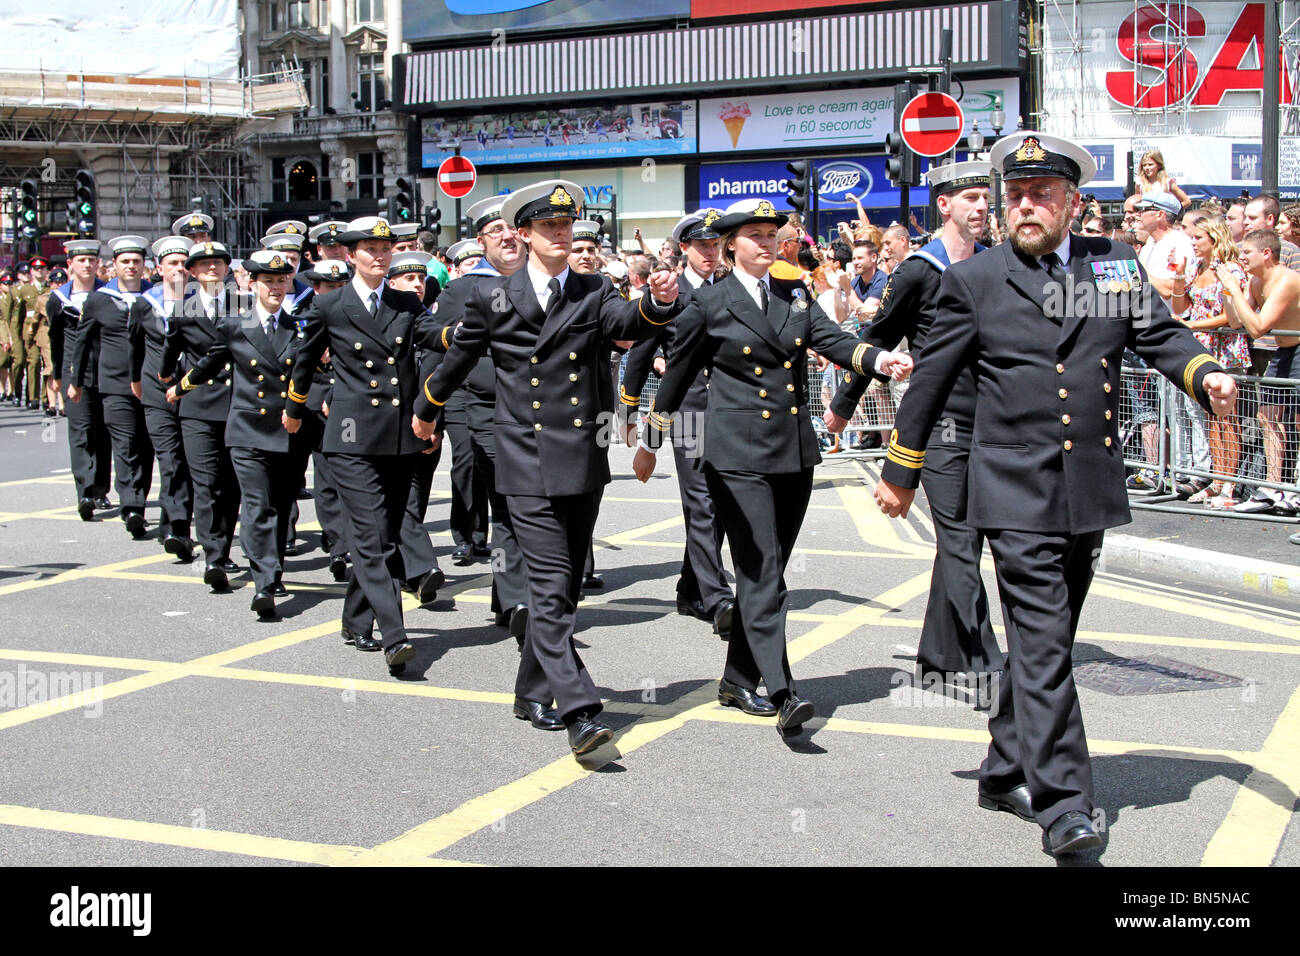 Gay members of the Royal Navy marching at the 40th Anniversary of Pride - Gay Pride Parade in London, 3rd July 2010 - Stock Image